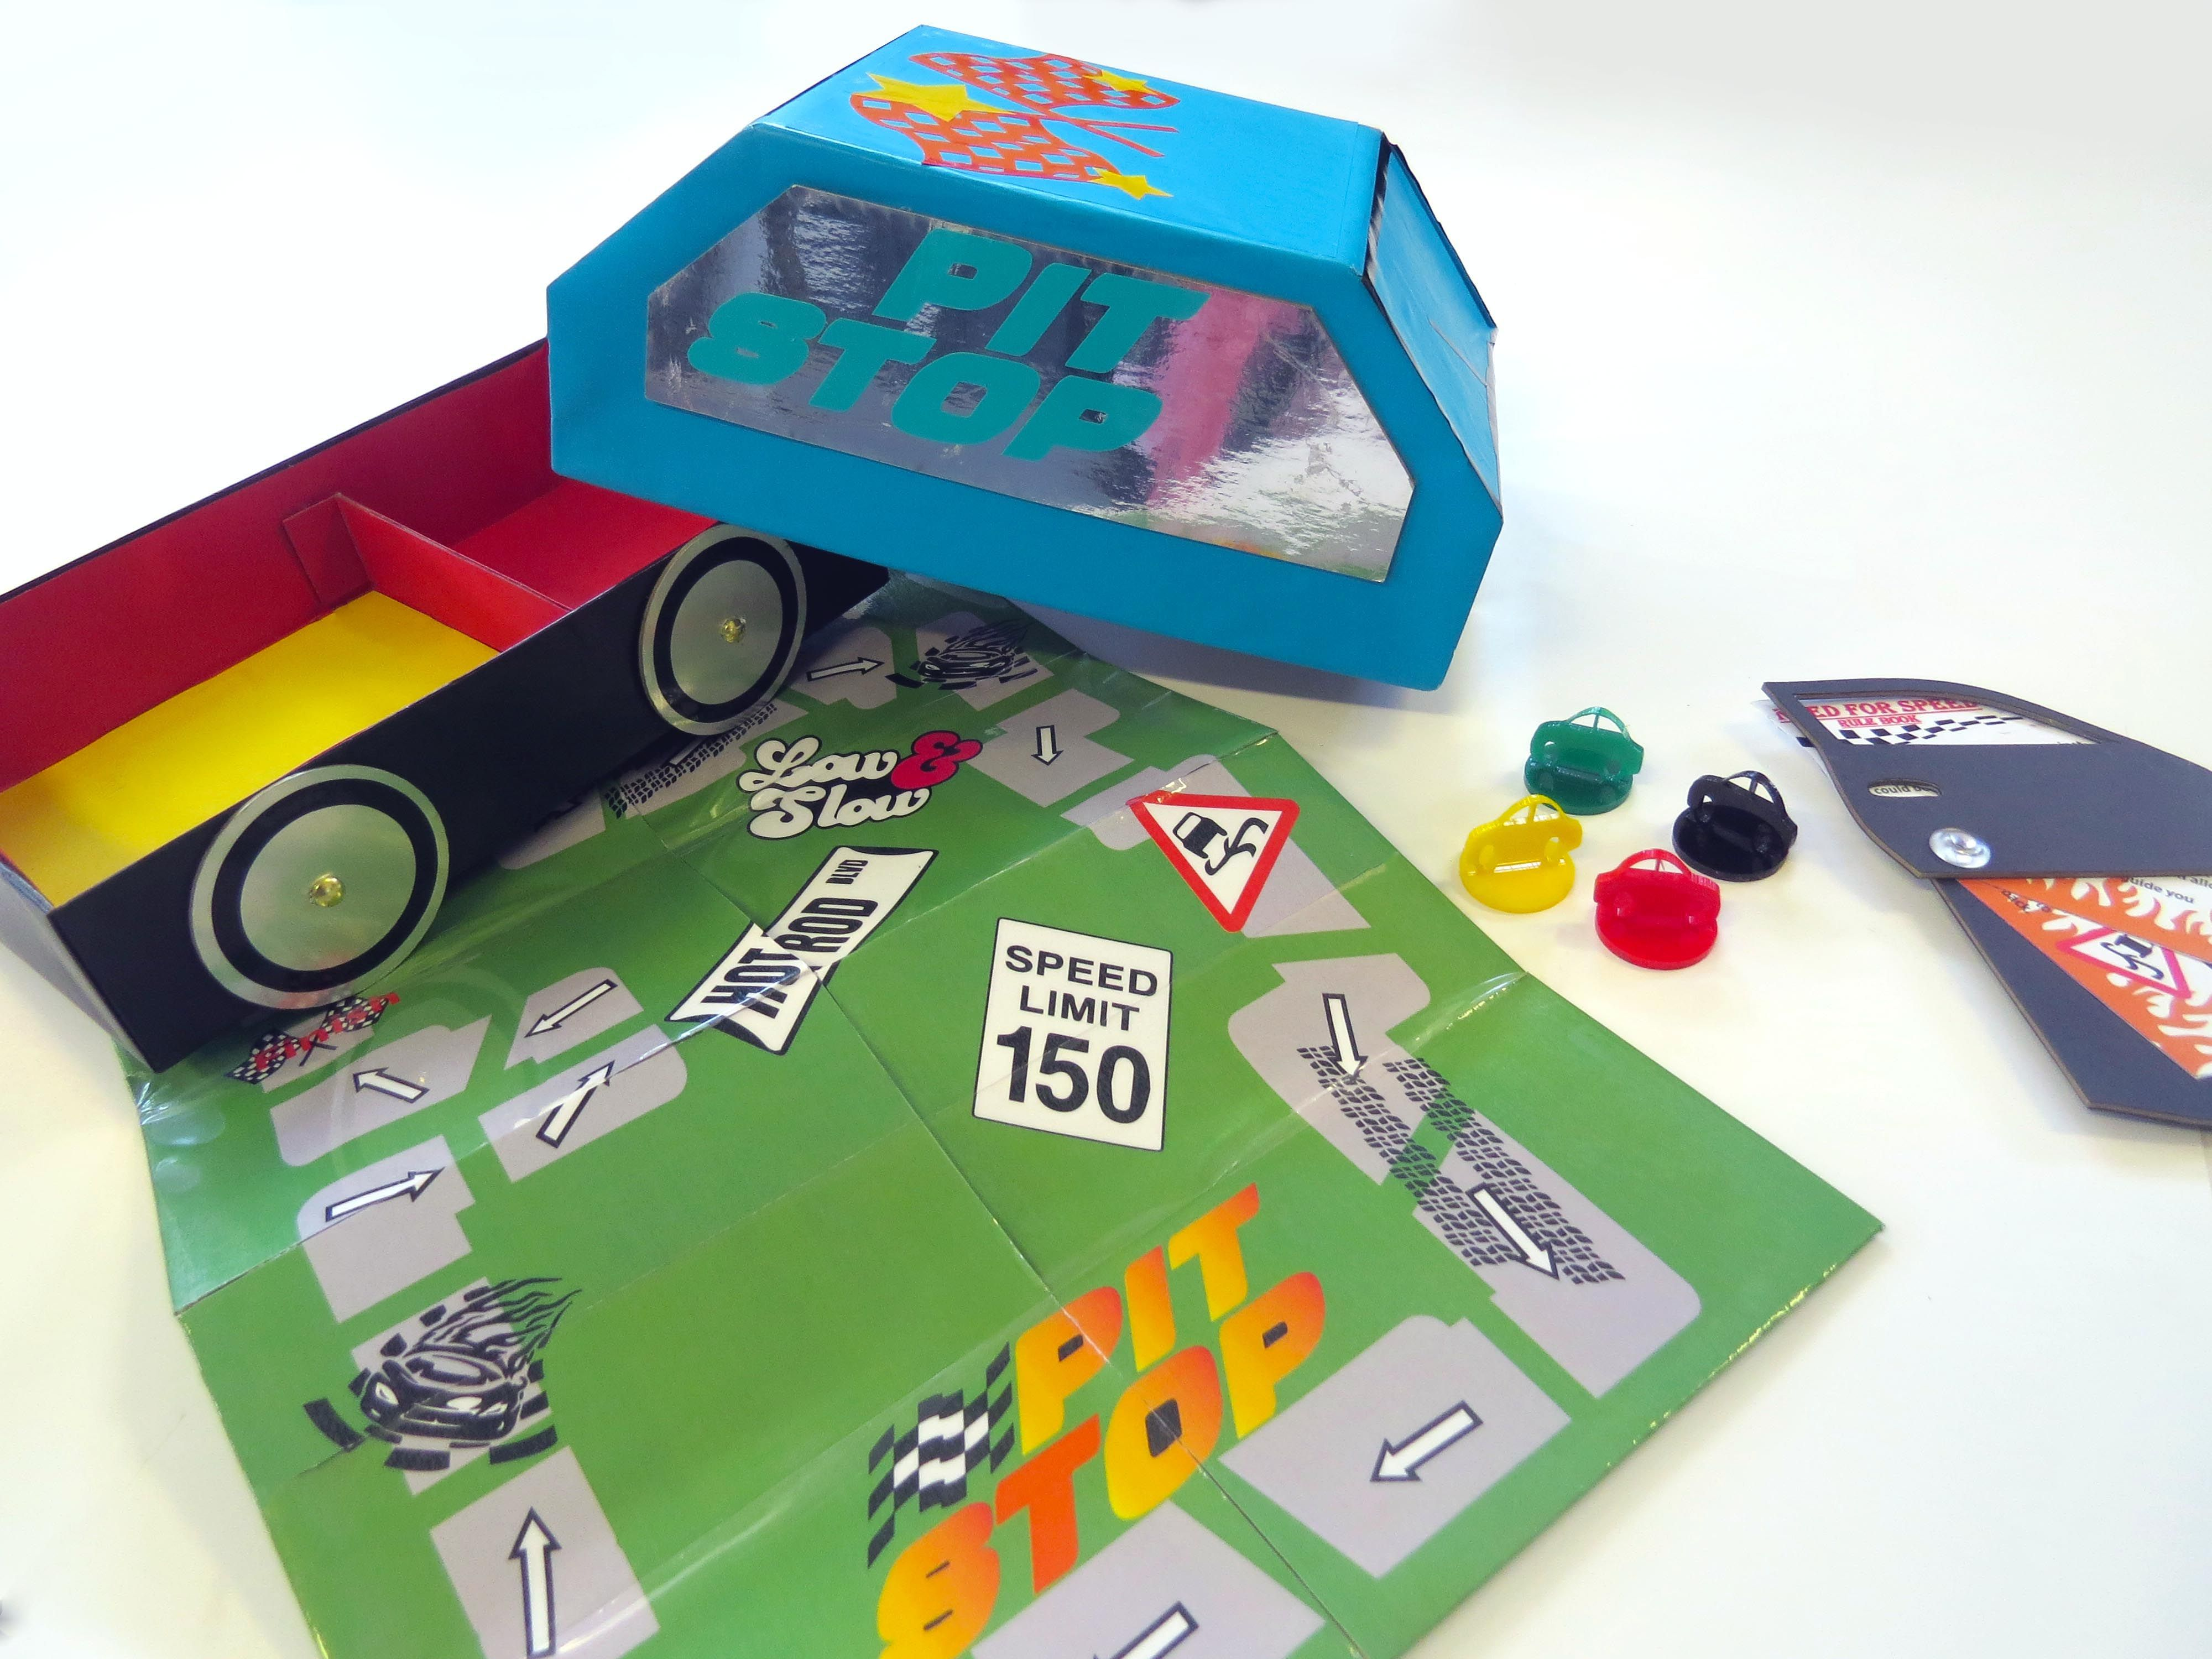 pit stop board game Board games, Games, Aqa